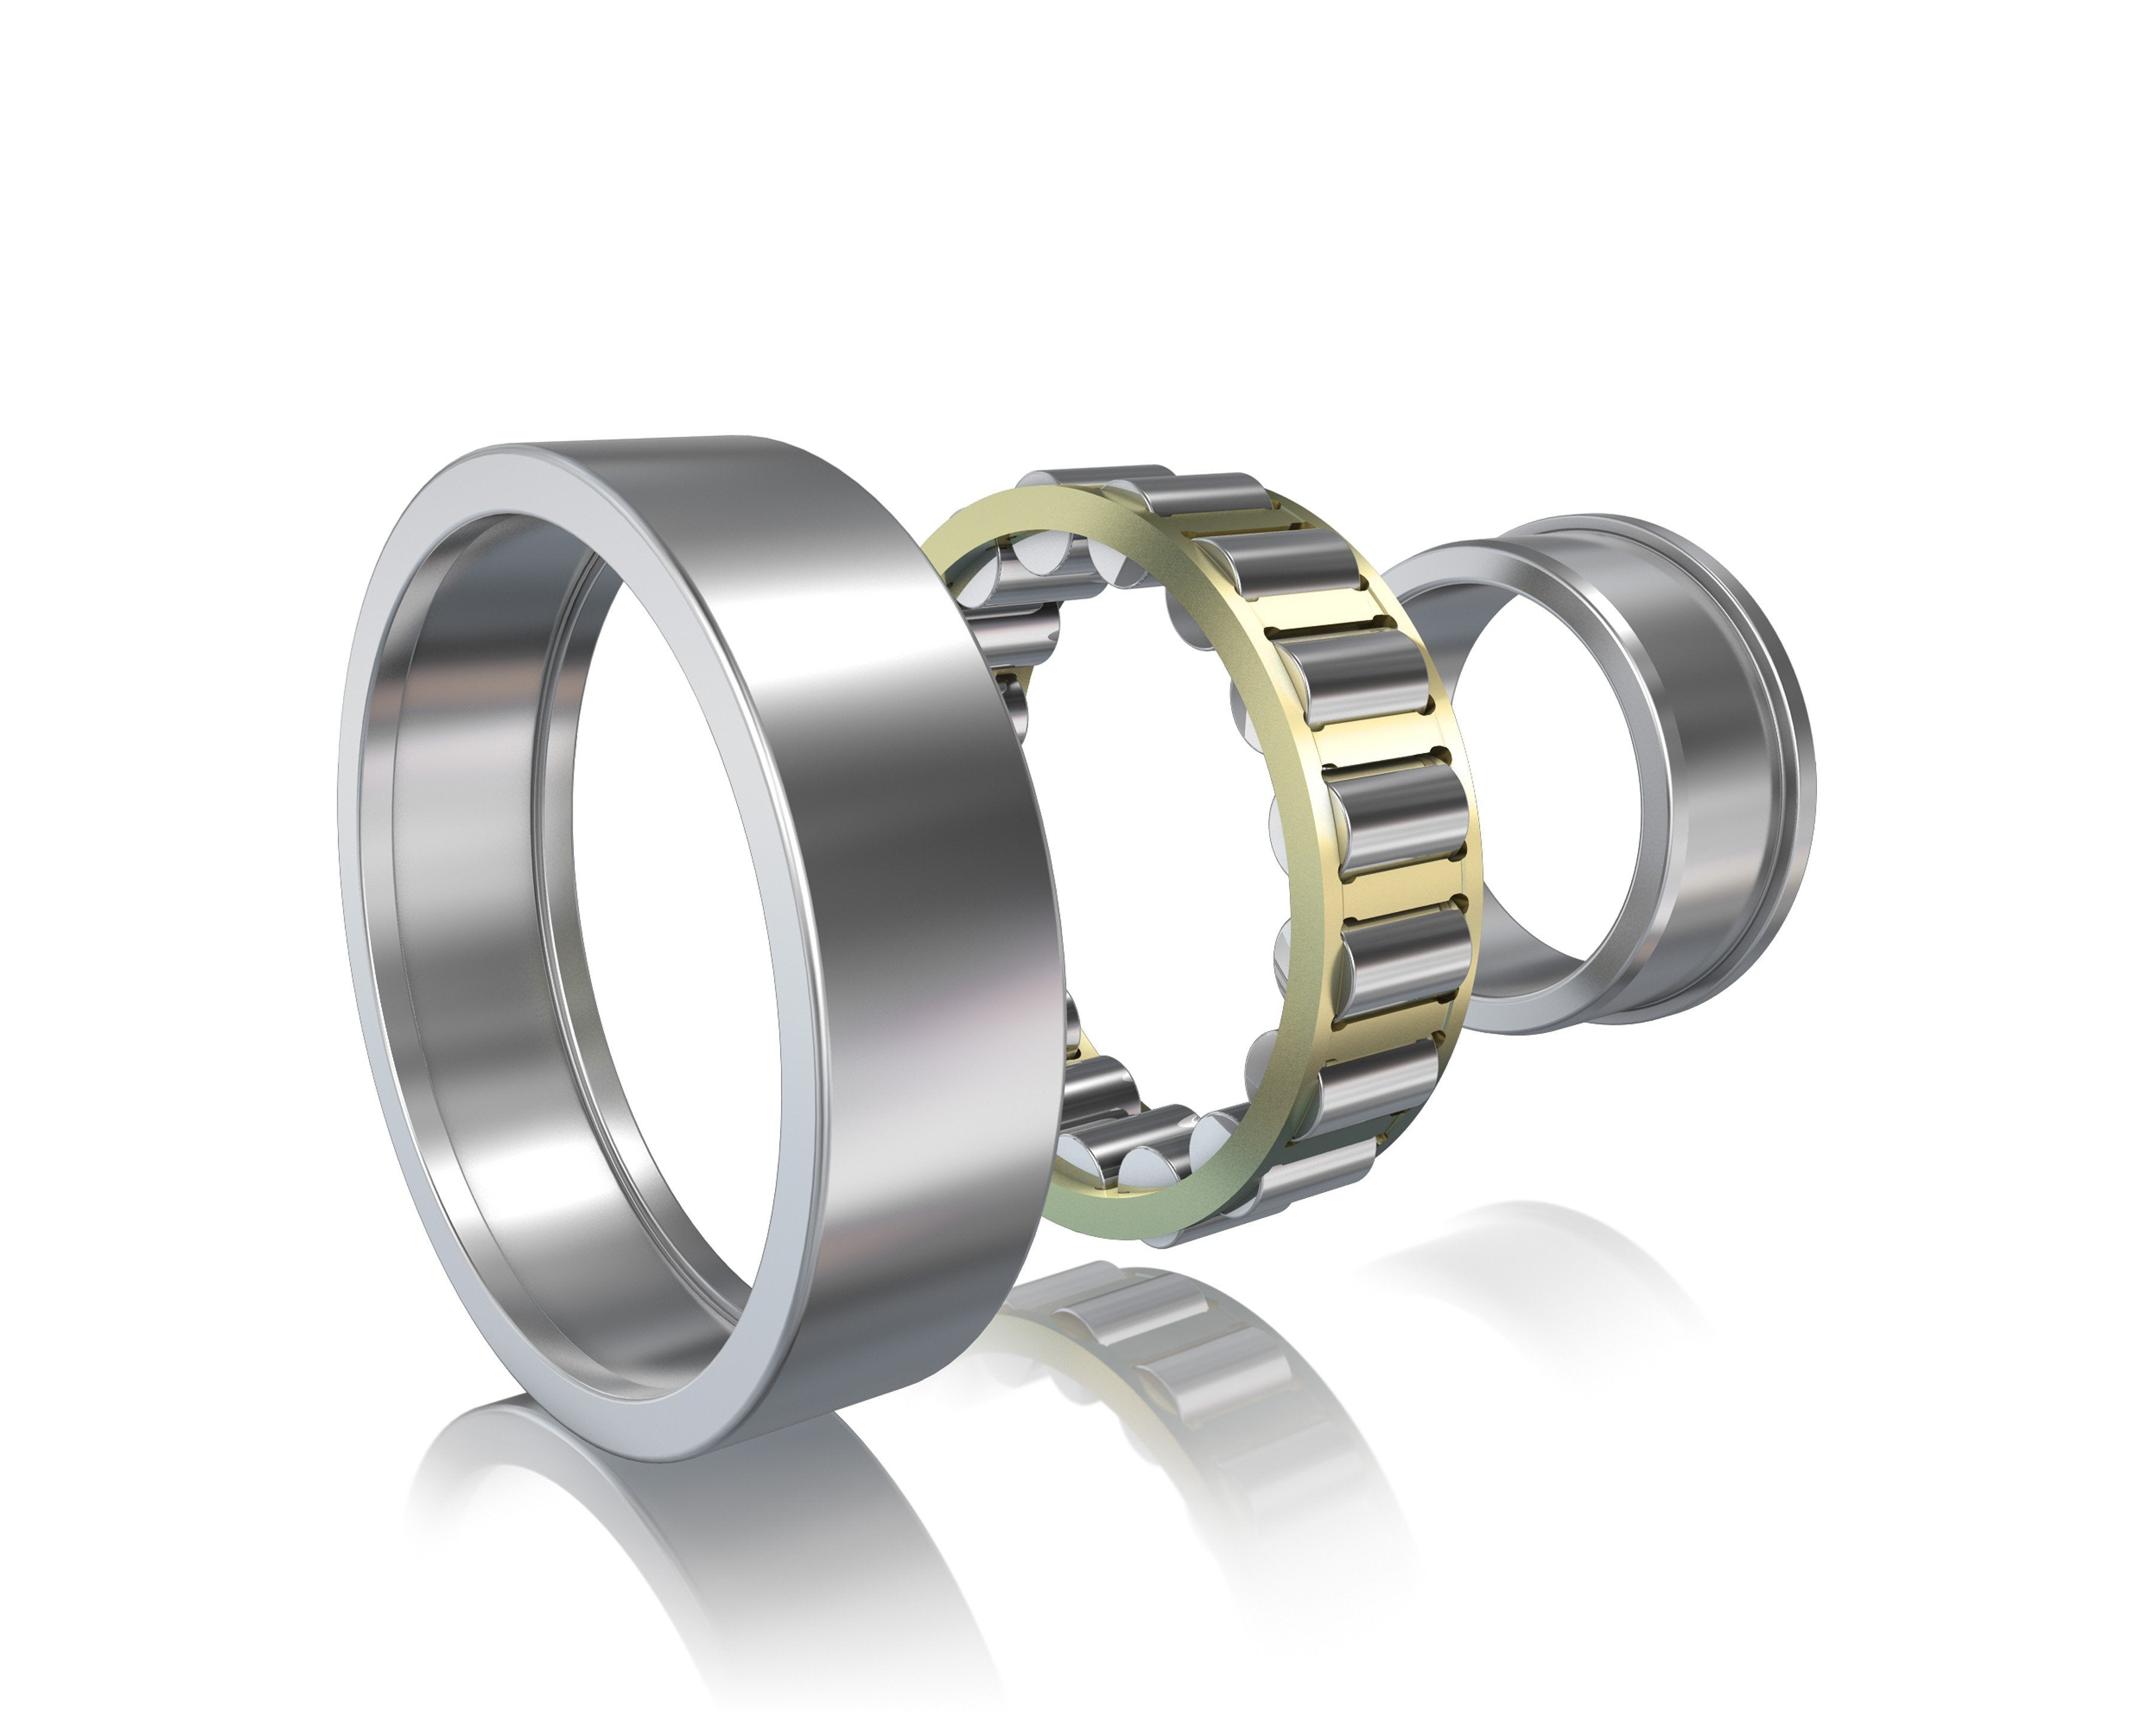 NJ2216-ECJ-SKF, Bearings, Cylindrical roller bearings